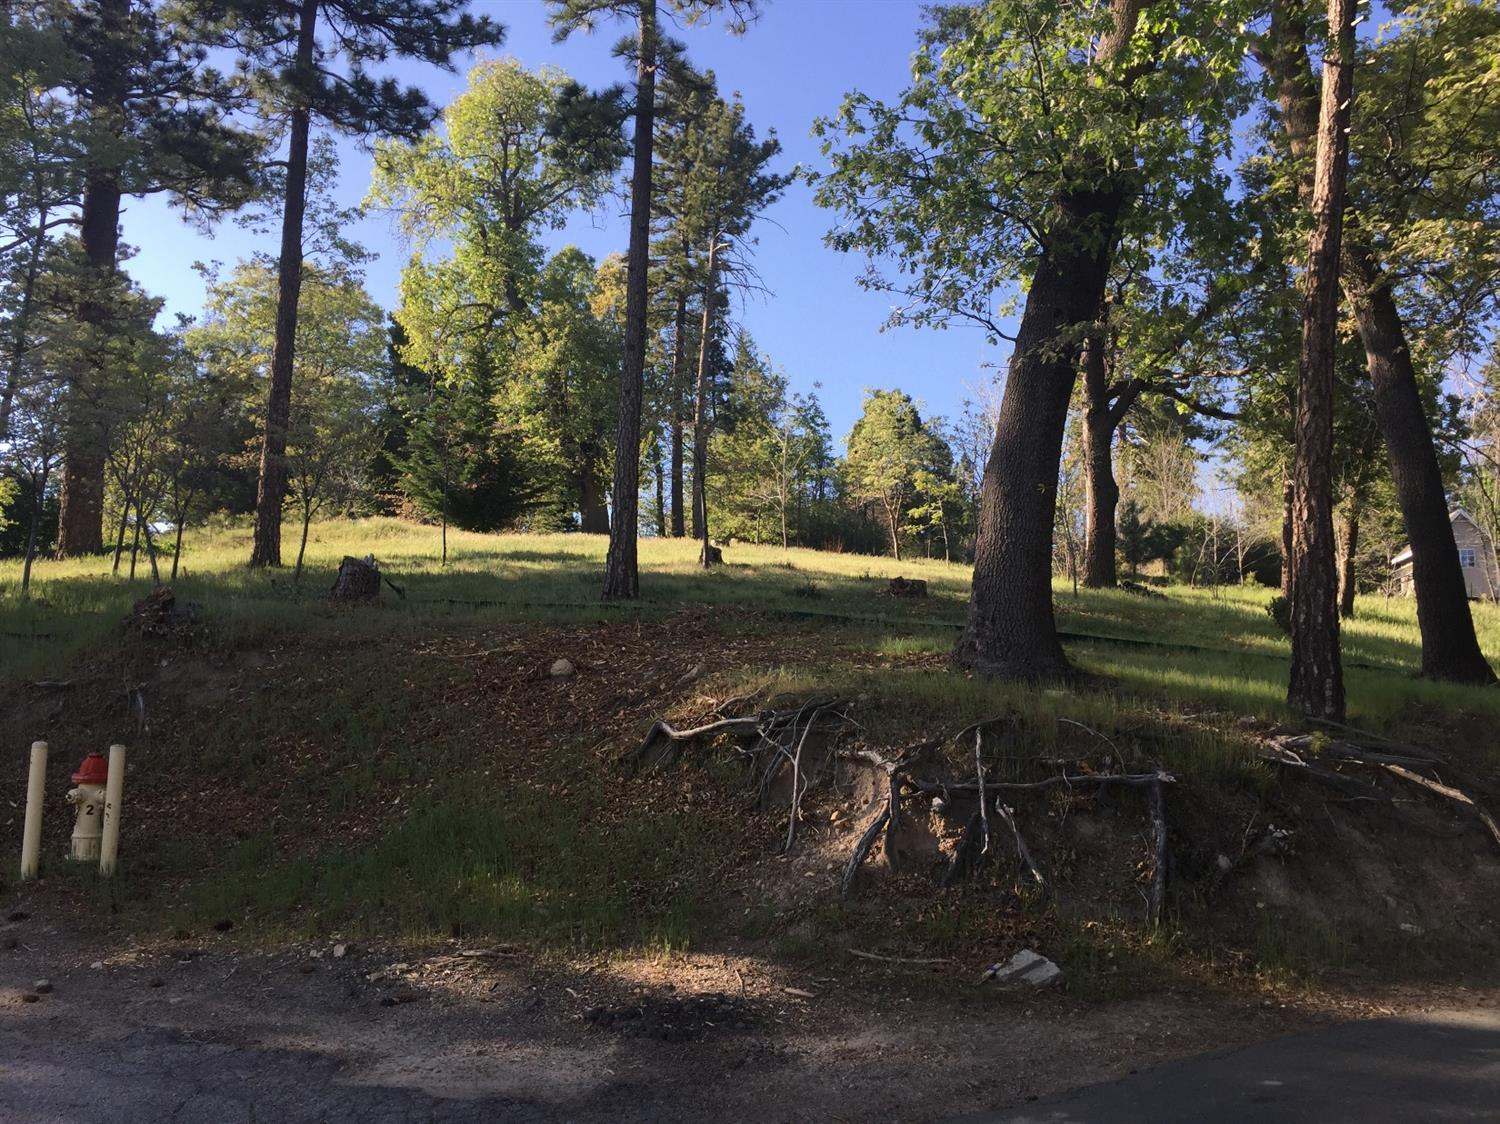 42 Park Drive, Running Springs, CA 92382 - Running Springs, CA real estate listing